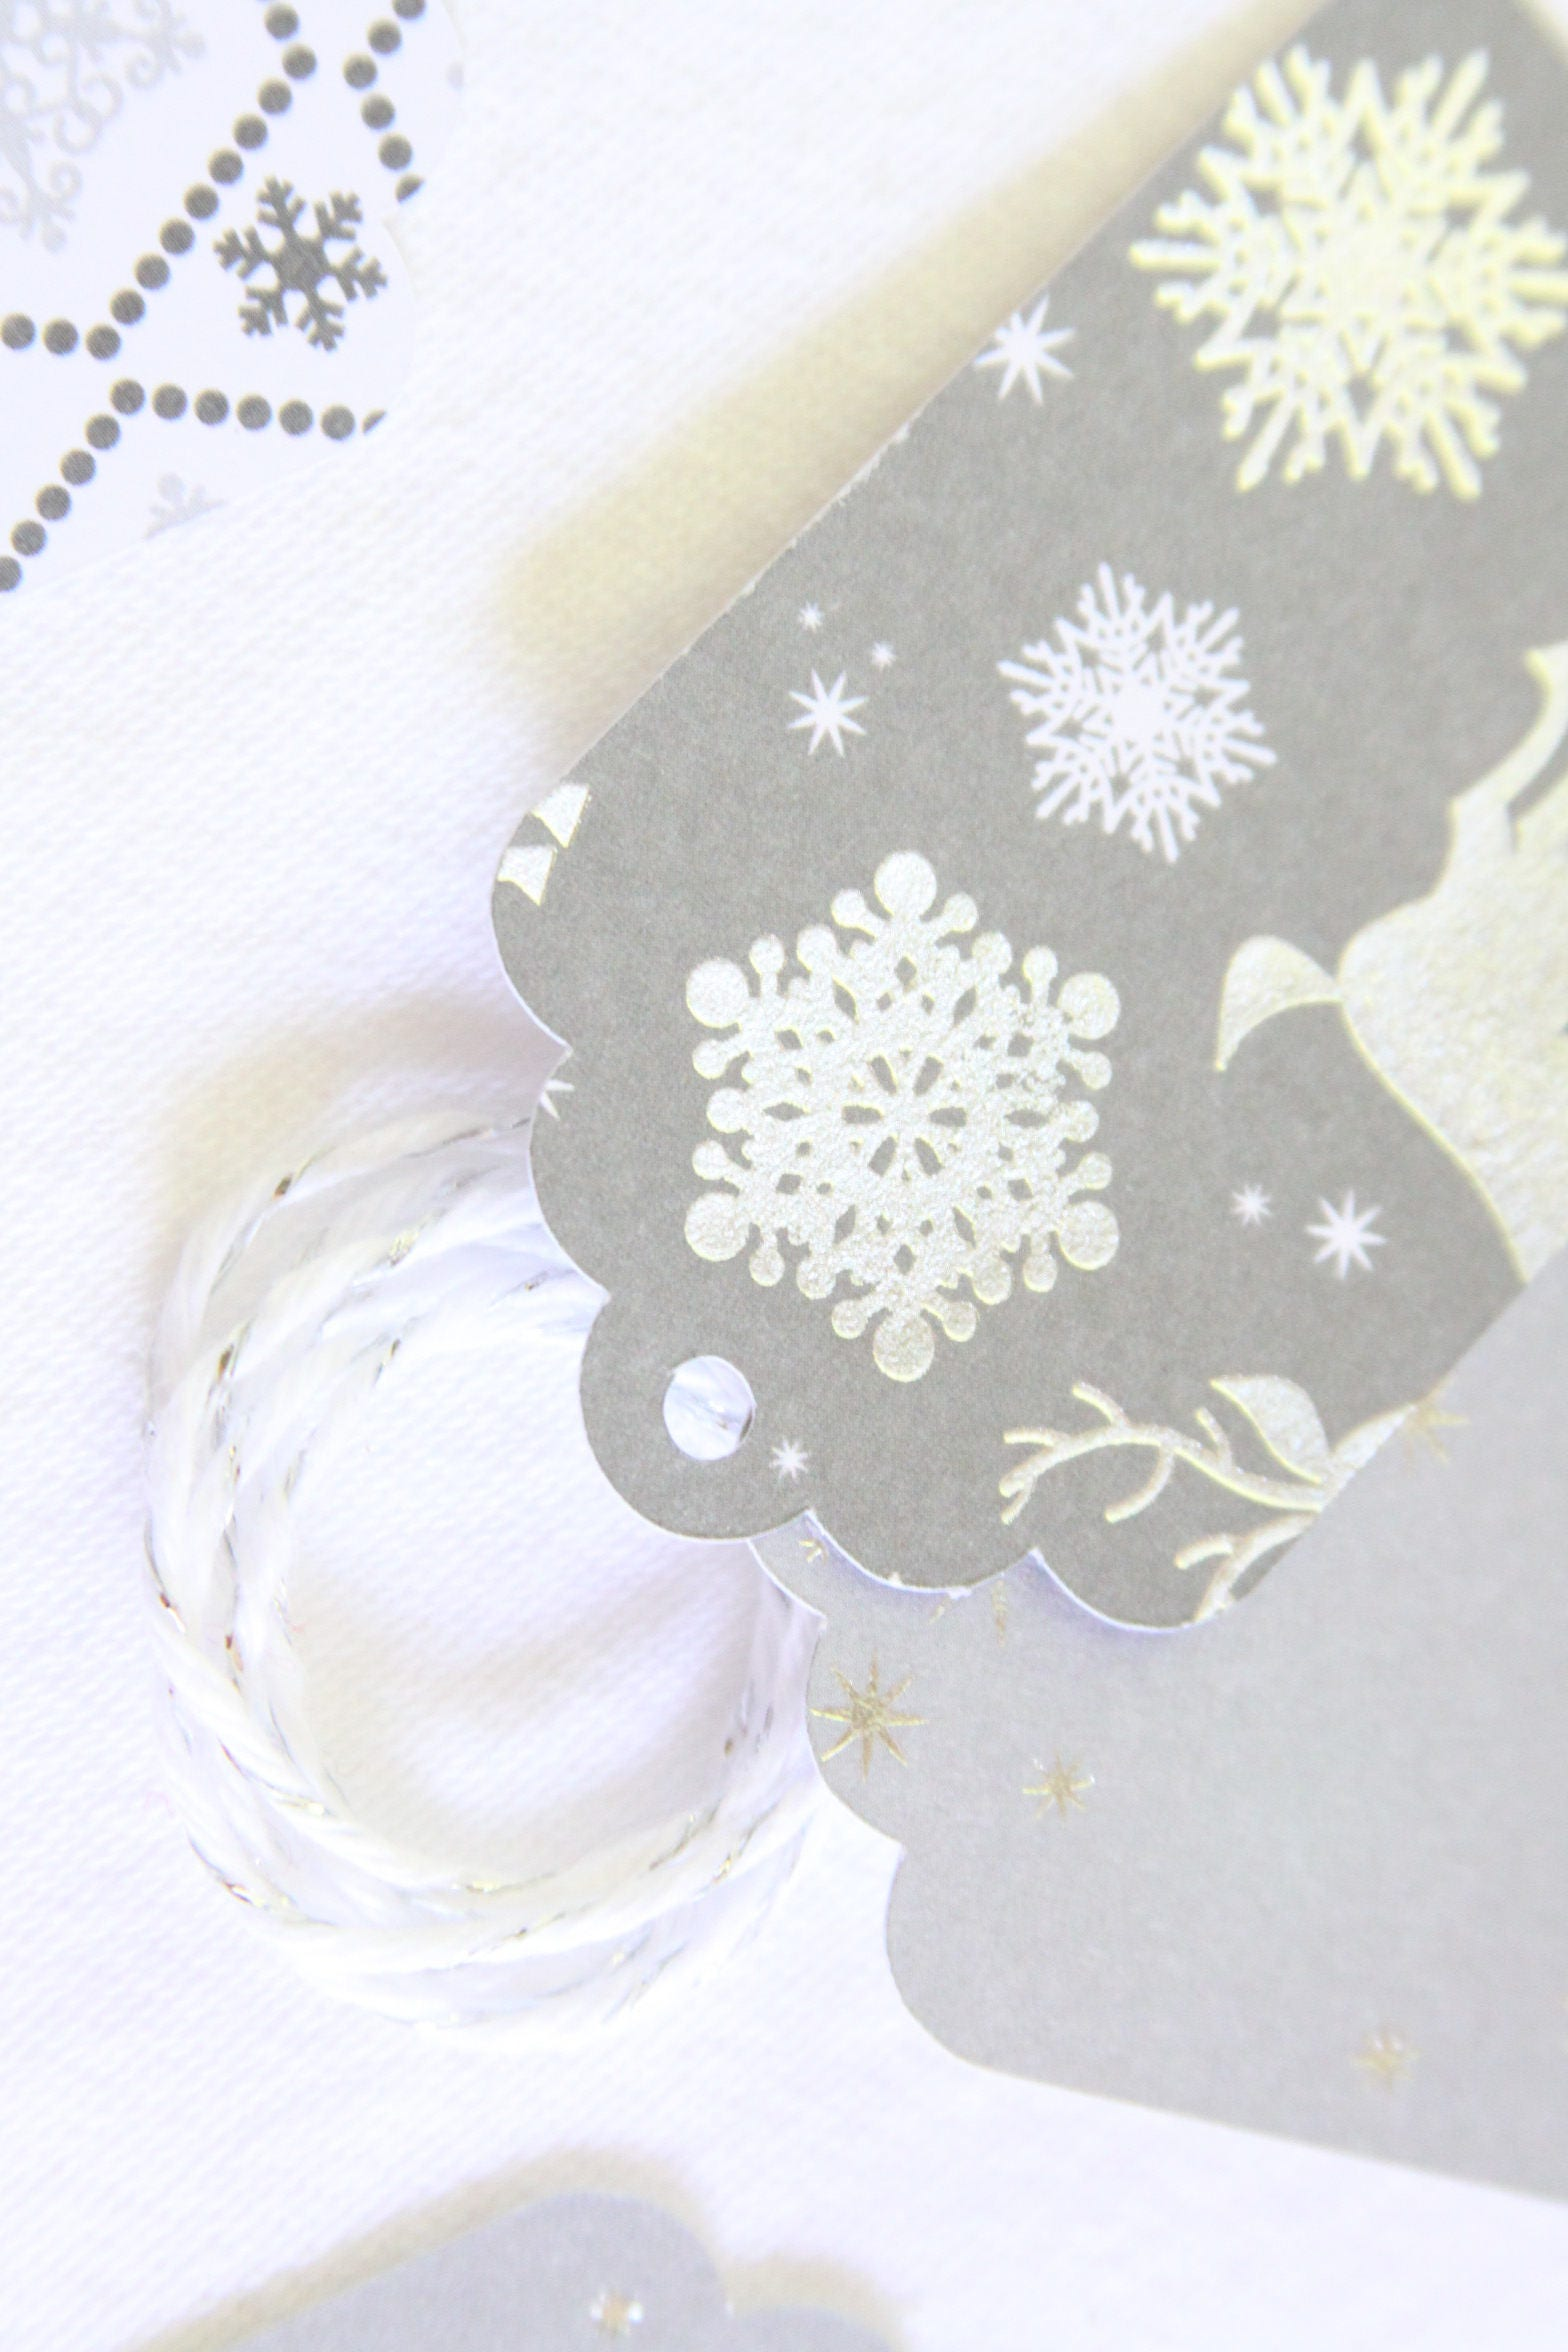 Baby Its Cold Outside, Silver Christmas Tags, Winter Wonderland ...